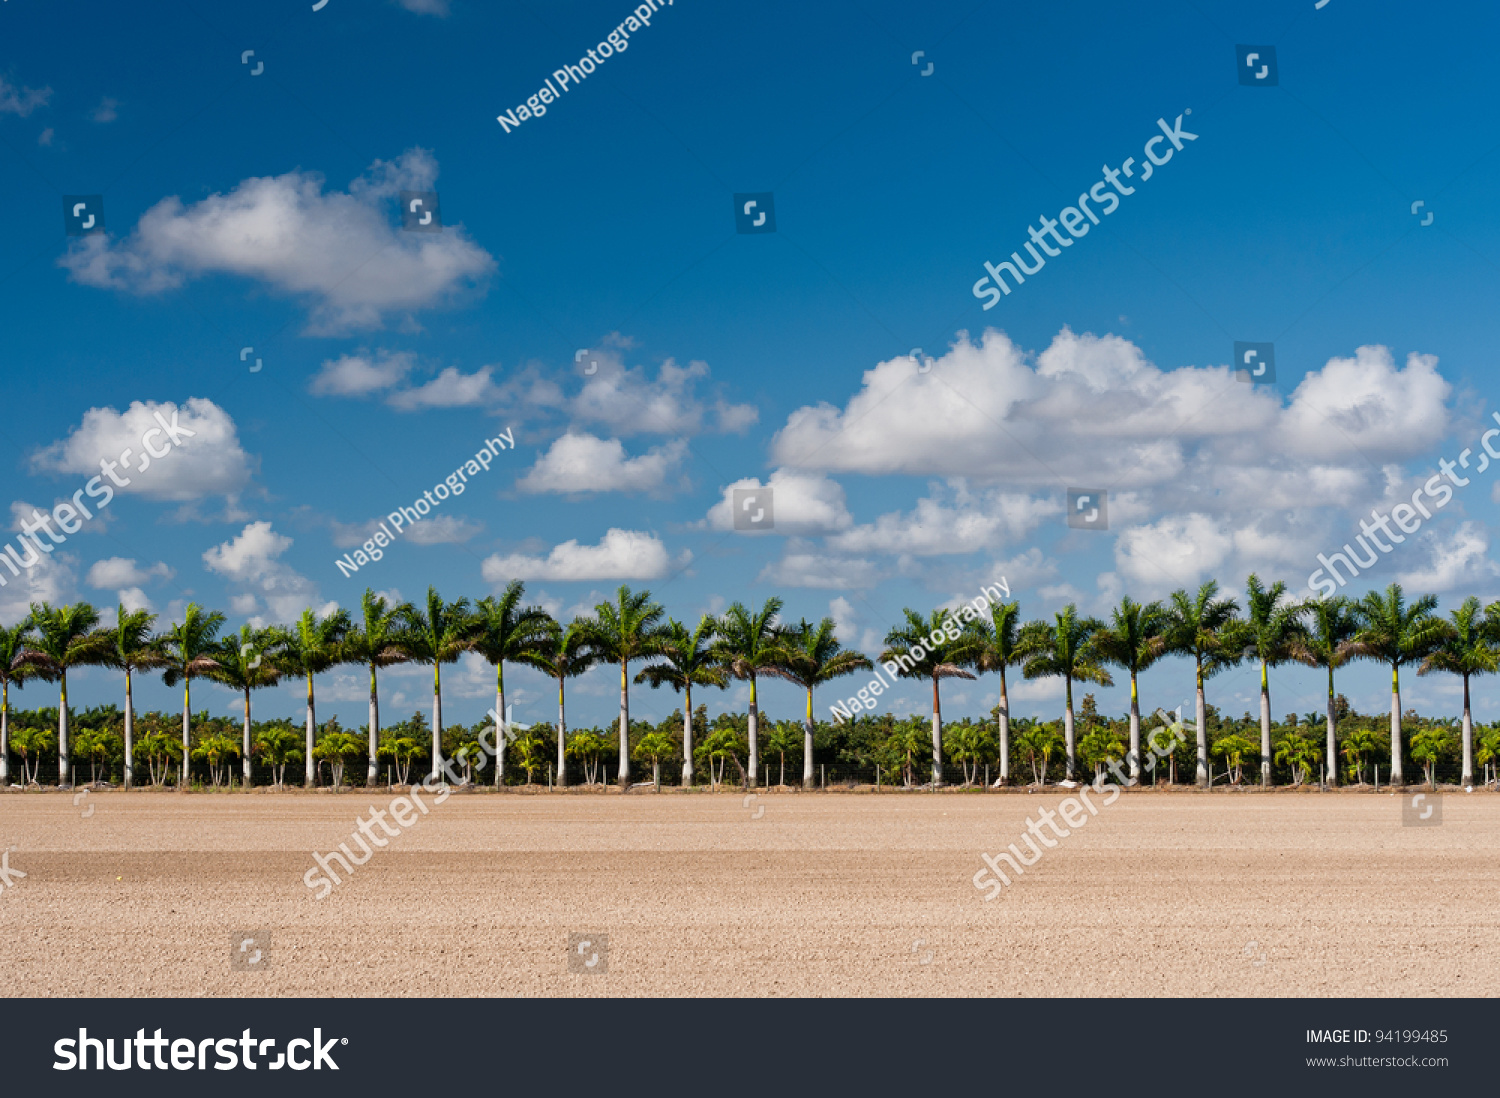 Palm Trees In The Agricultural And Rural Development Zones